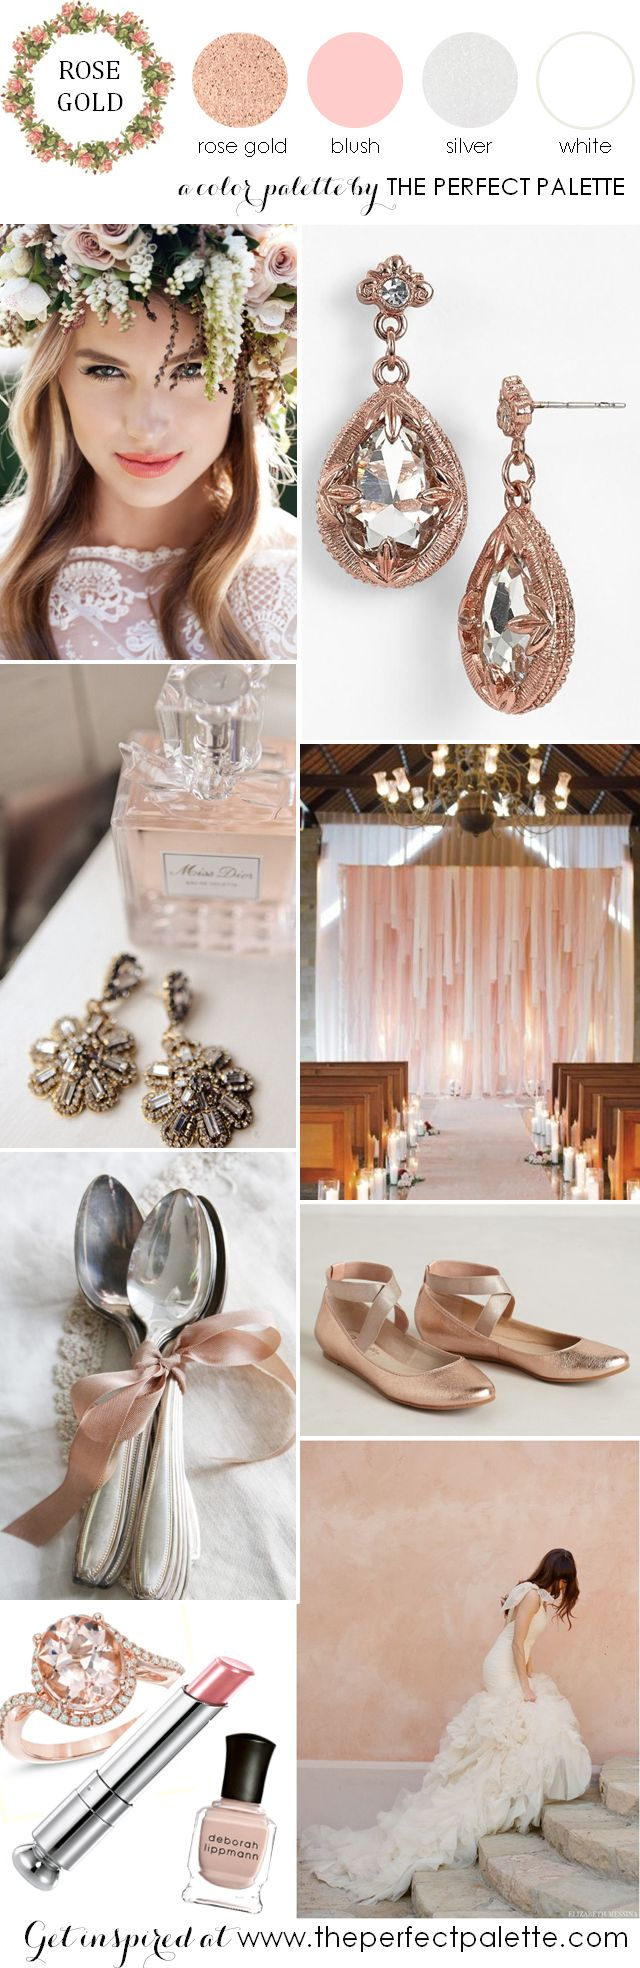 Blush Wedding Palette. Combination of rose gold hues and pretty blush shades. (Image by perfect palette)